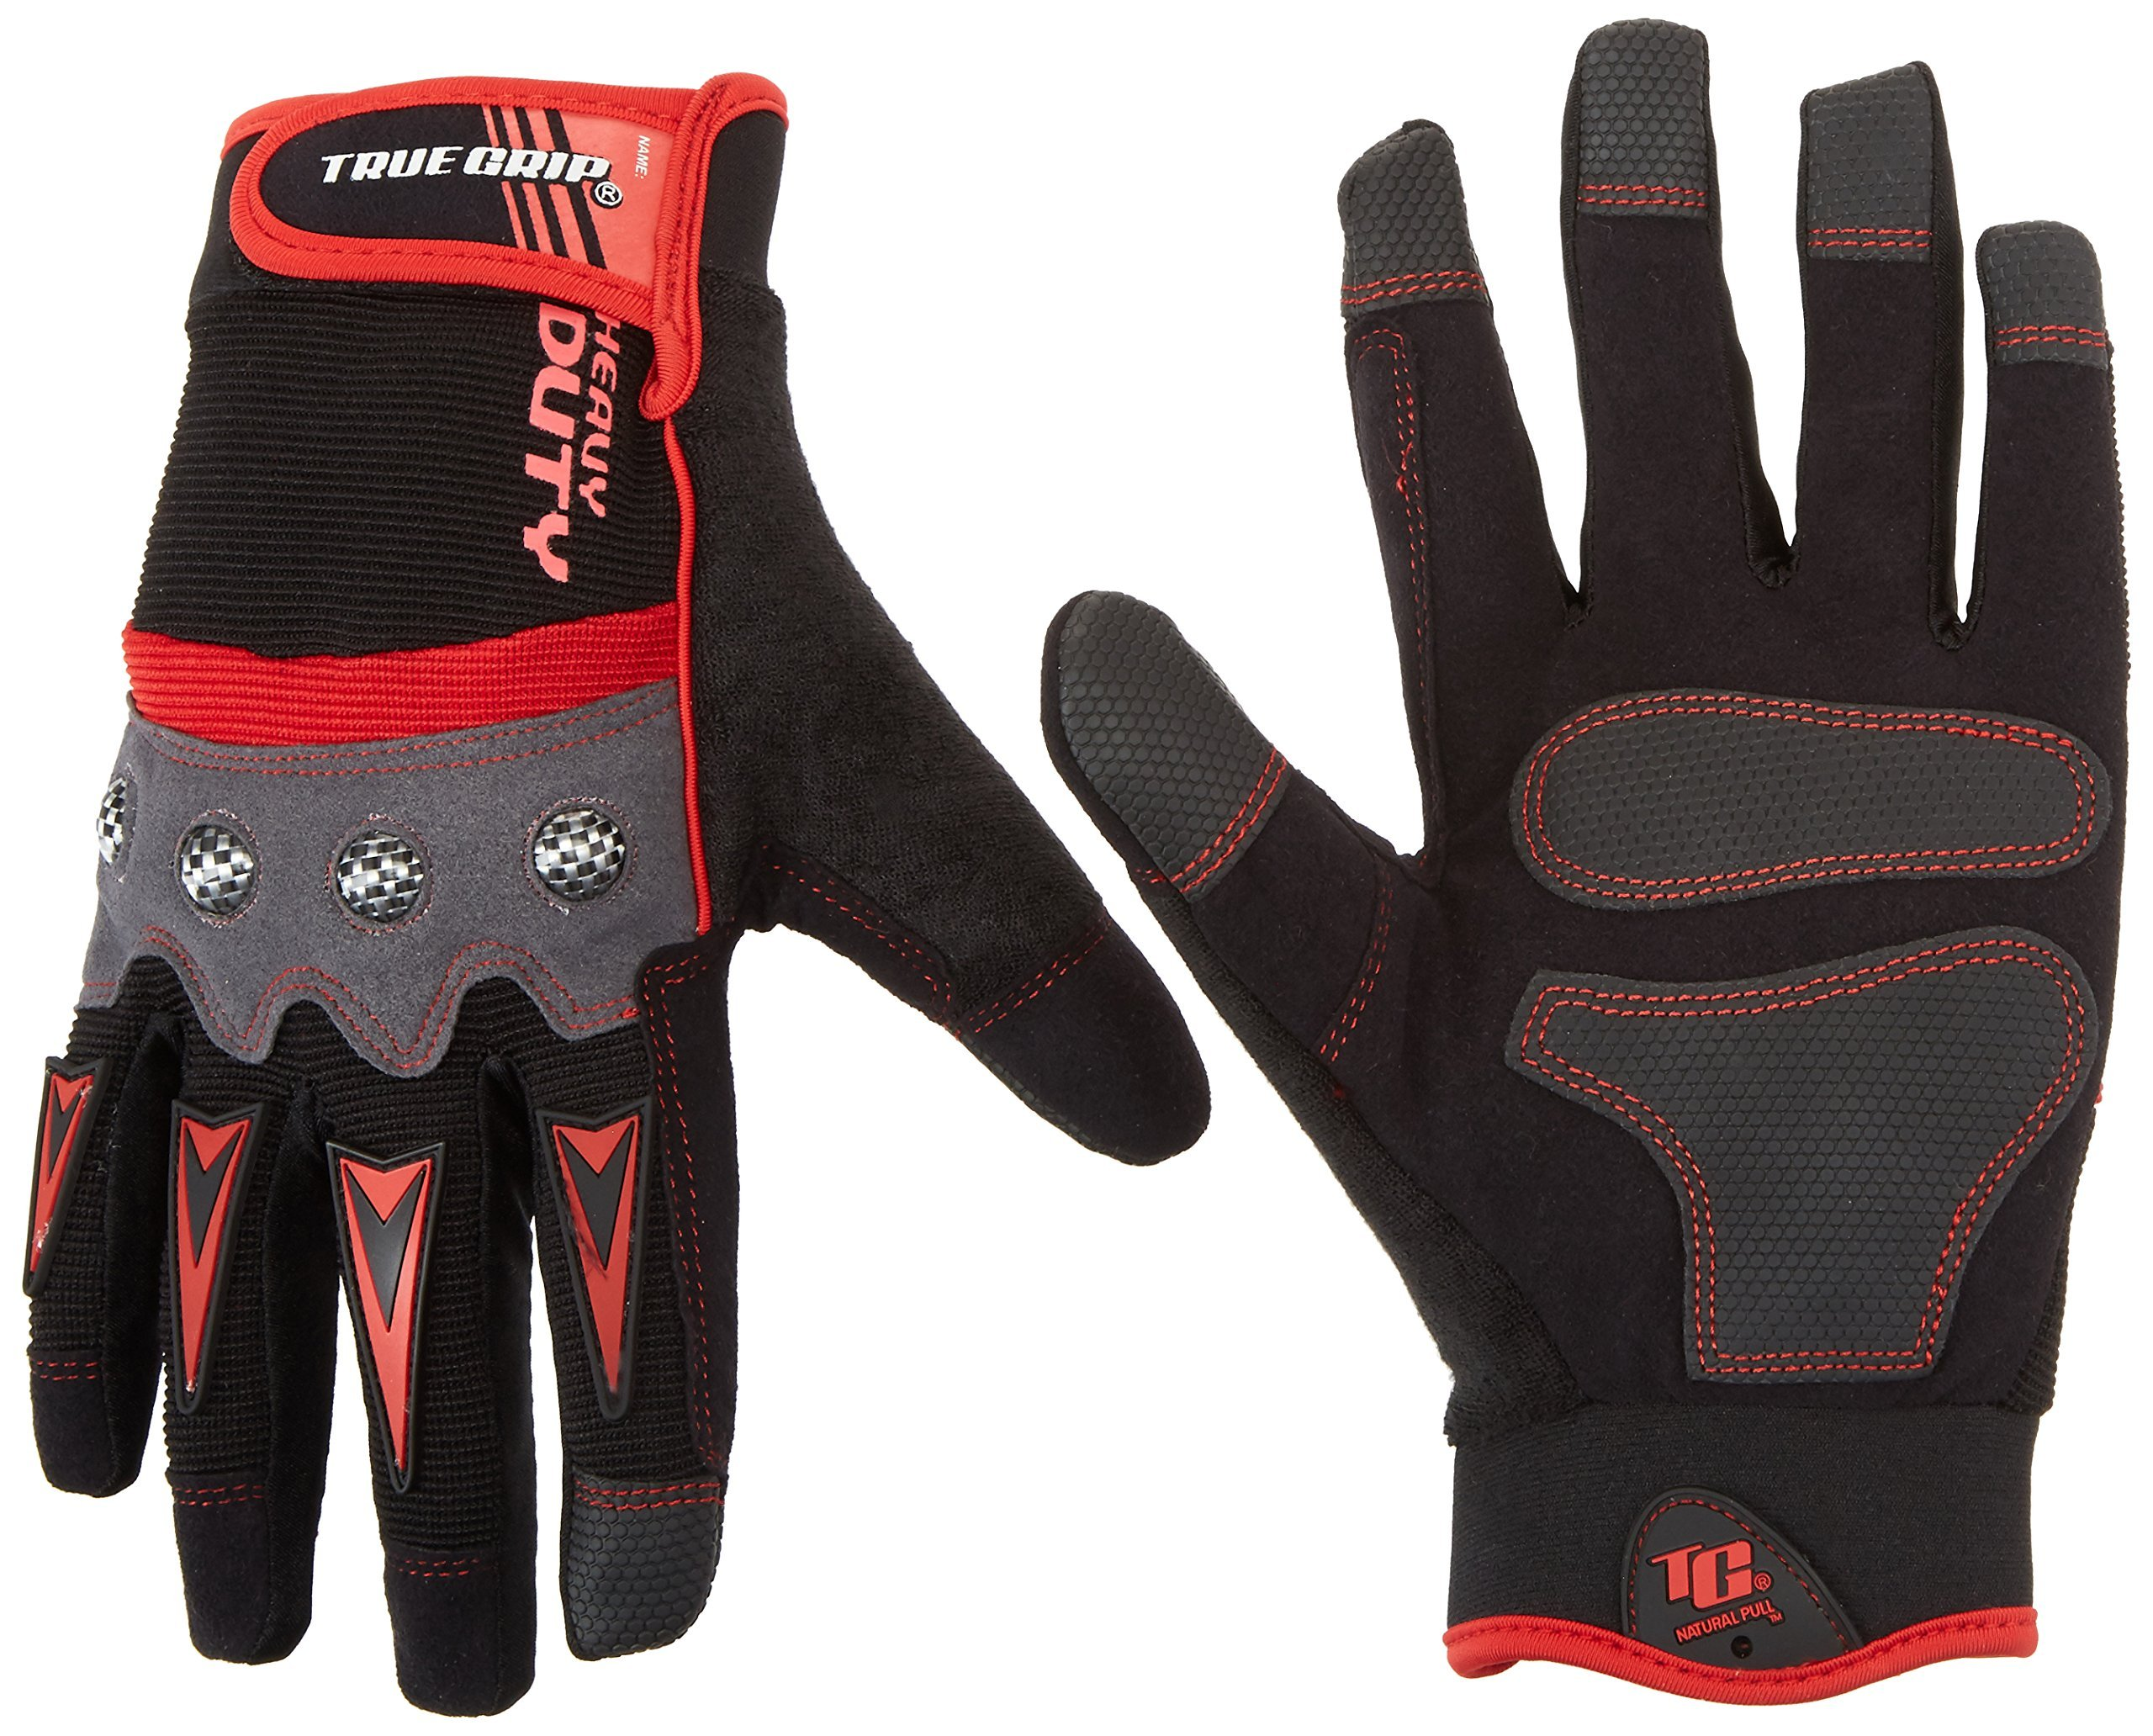 True Grip Heavy Duty Work Gloves with Touch Screen Capability, Large by True Grip